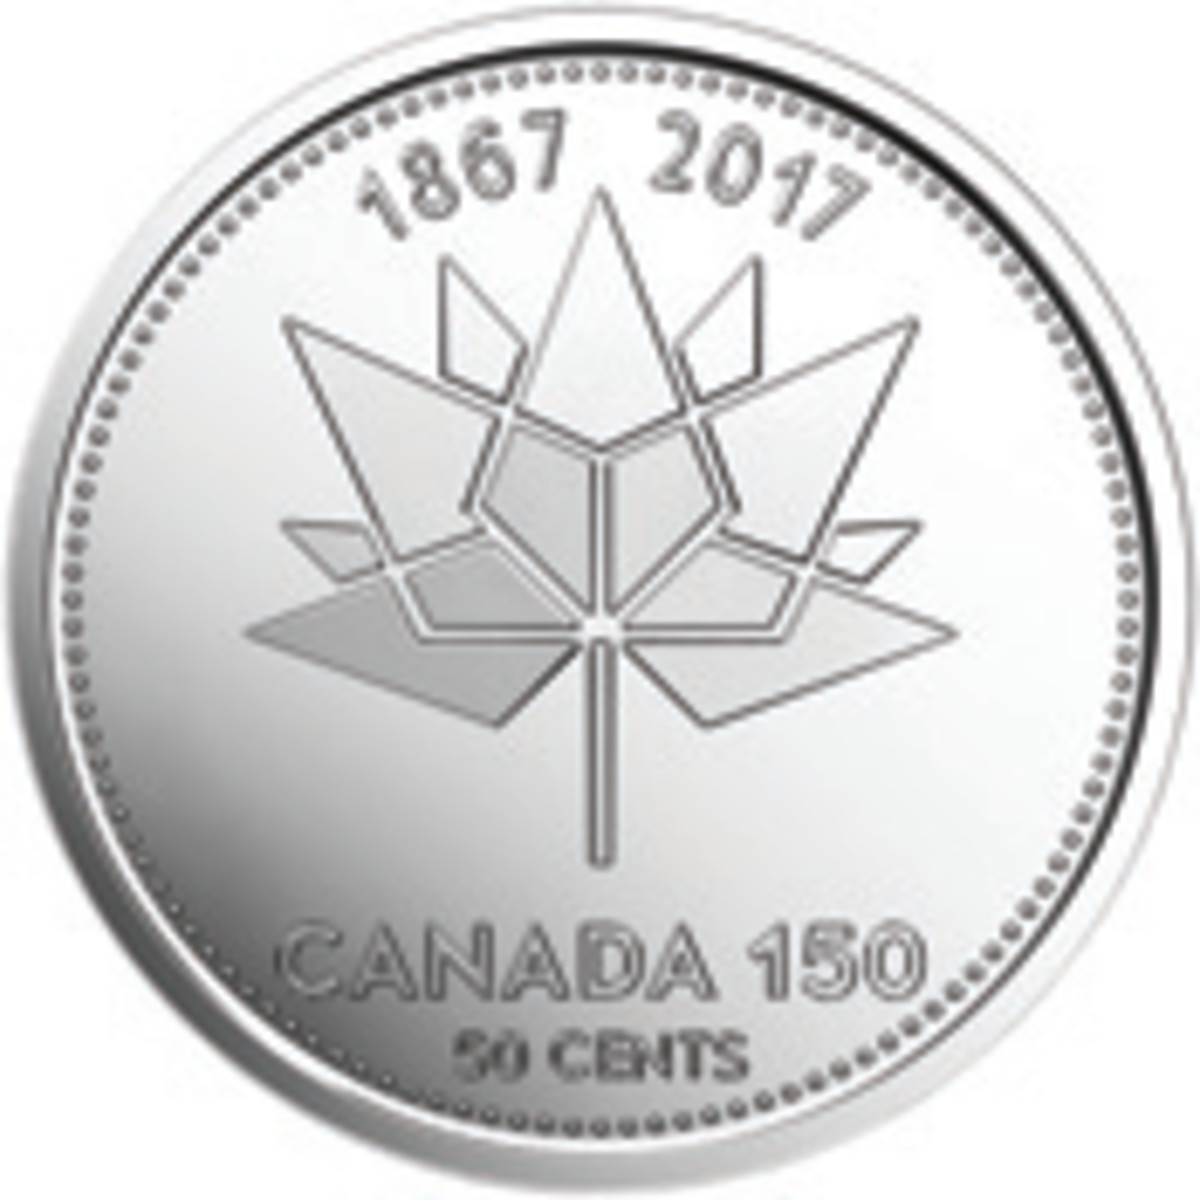 The reverse of Canada's 2017 commemorative 50 cents displays Ariana Cuvin's maple leaf mosaic representing the Confederation. The four diamond shapes connected to the stem symbolize the four original provinces that joined in 1867 (Ontario, Quebec, New Brunswick, Nova Scotia). The remaining 9 shapes represent the provinces and territories that have followed since.